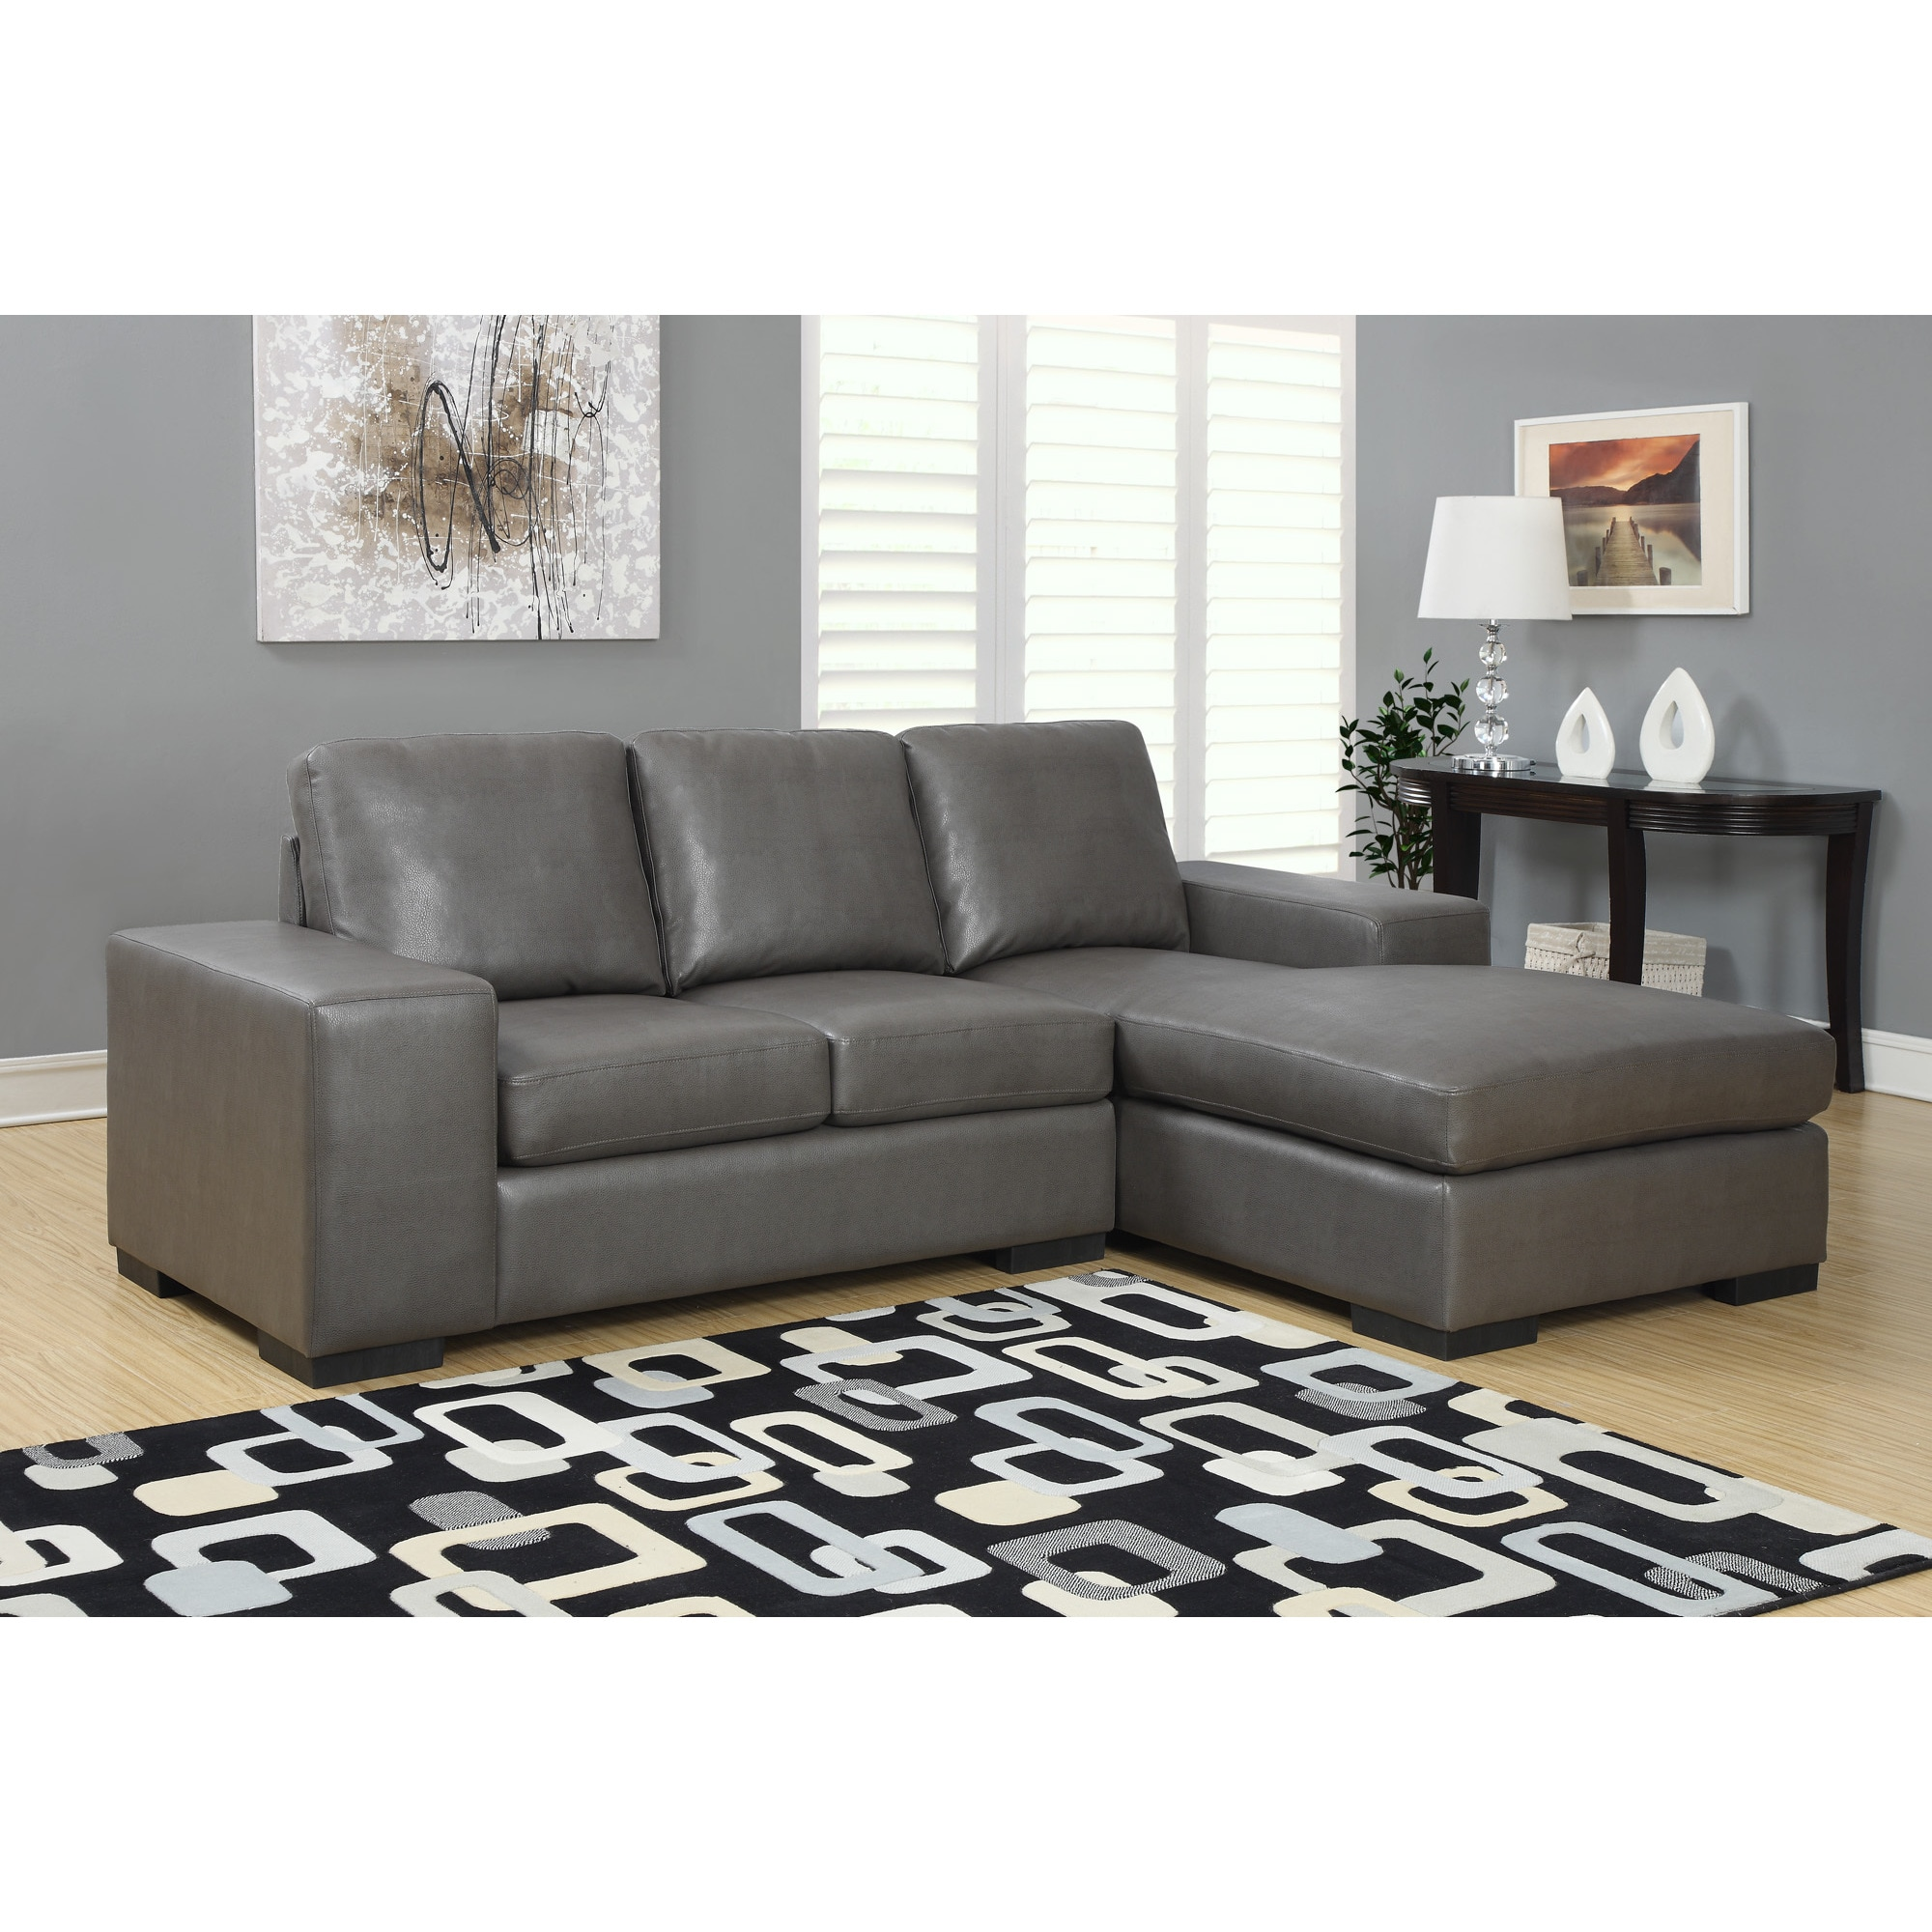 Monarch Charcoal Grey Bonded Leather Sectional Sofa Loung...